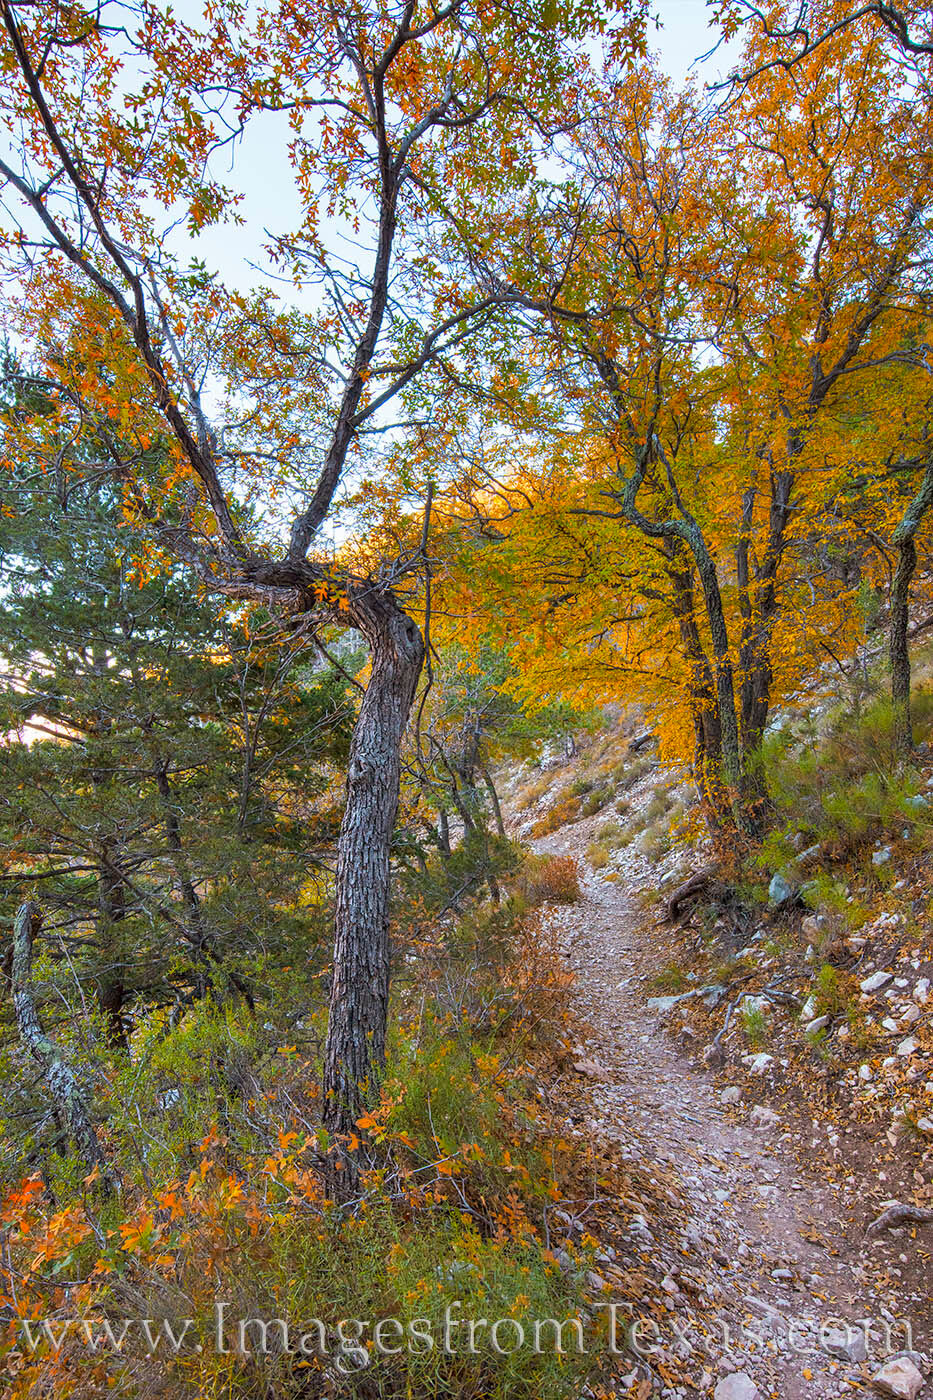 Fall colors line the trail leading to Guadalupe Peak, the highest point in Texas. While the trail is nearly 9 miles round trip...